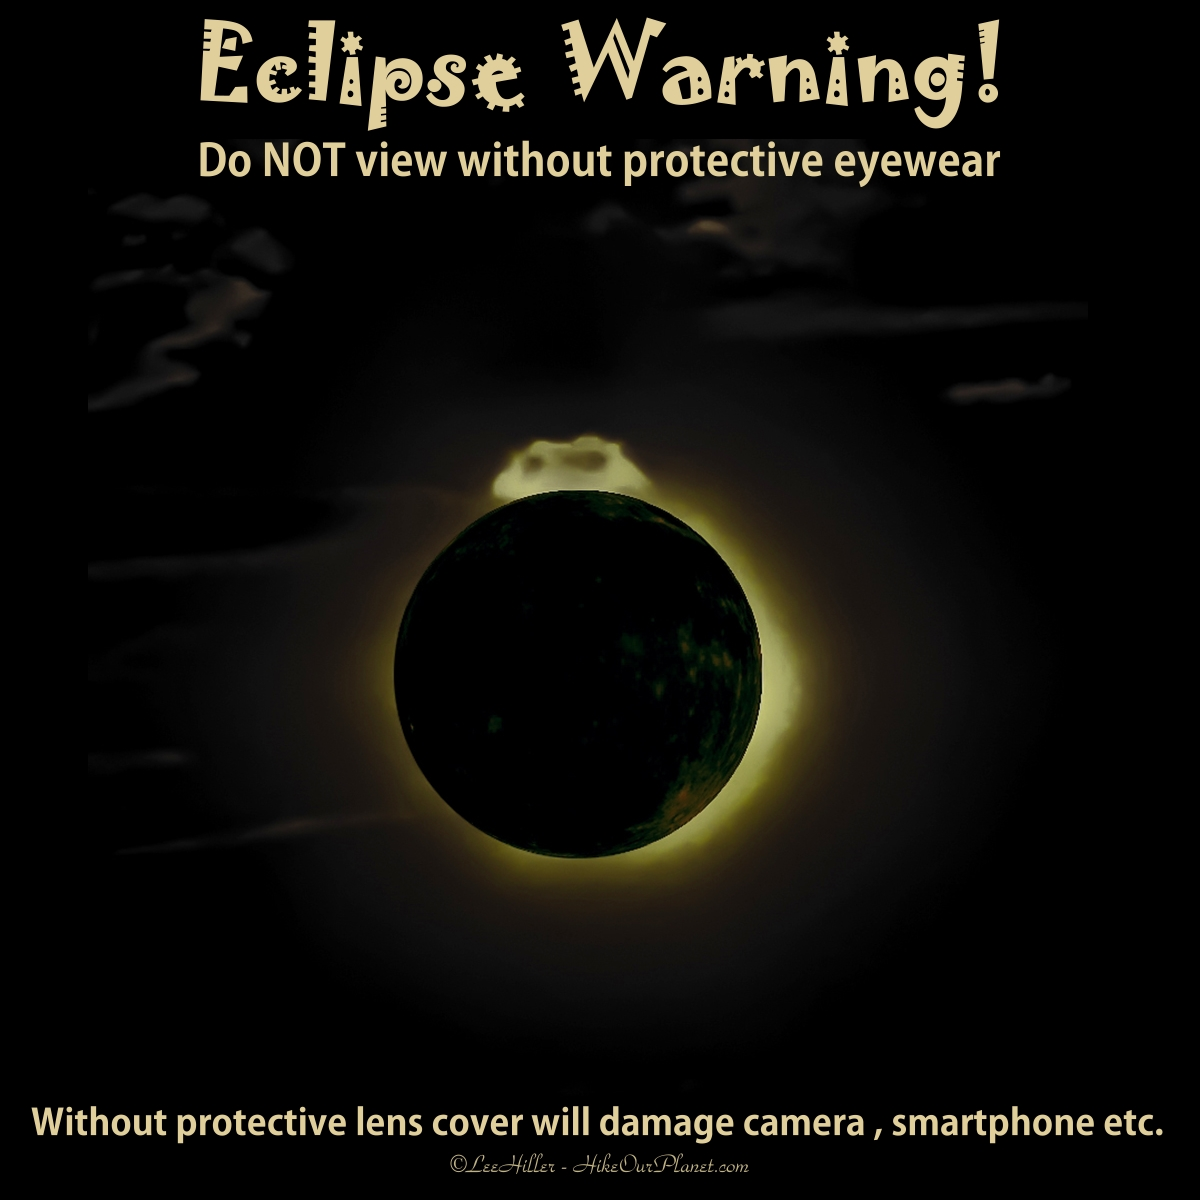 Eclipse Warning! Be safe when viewing